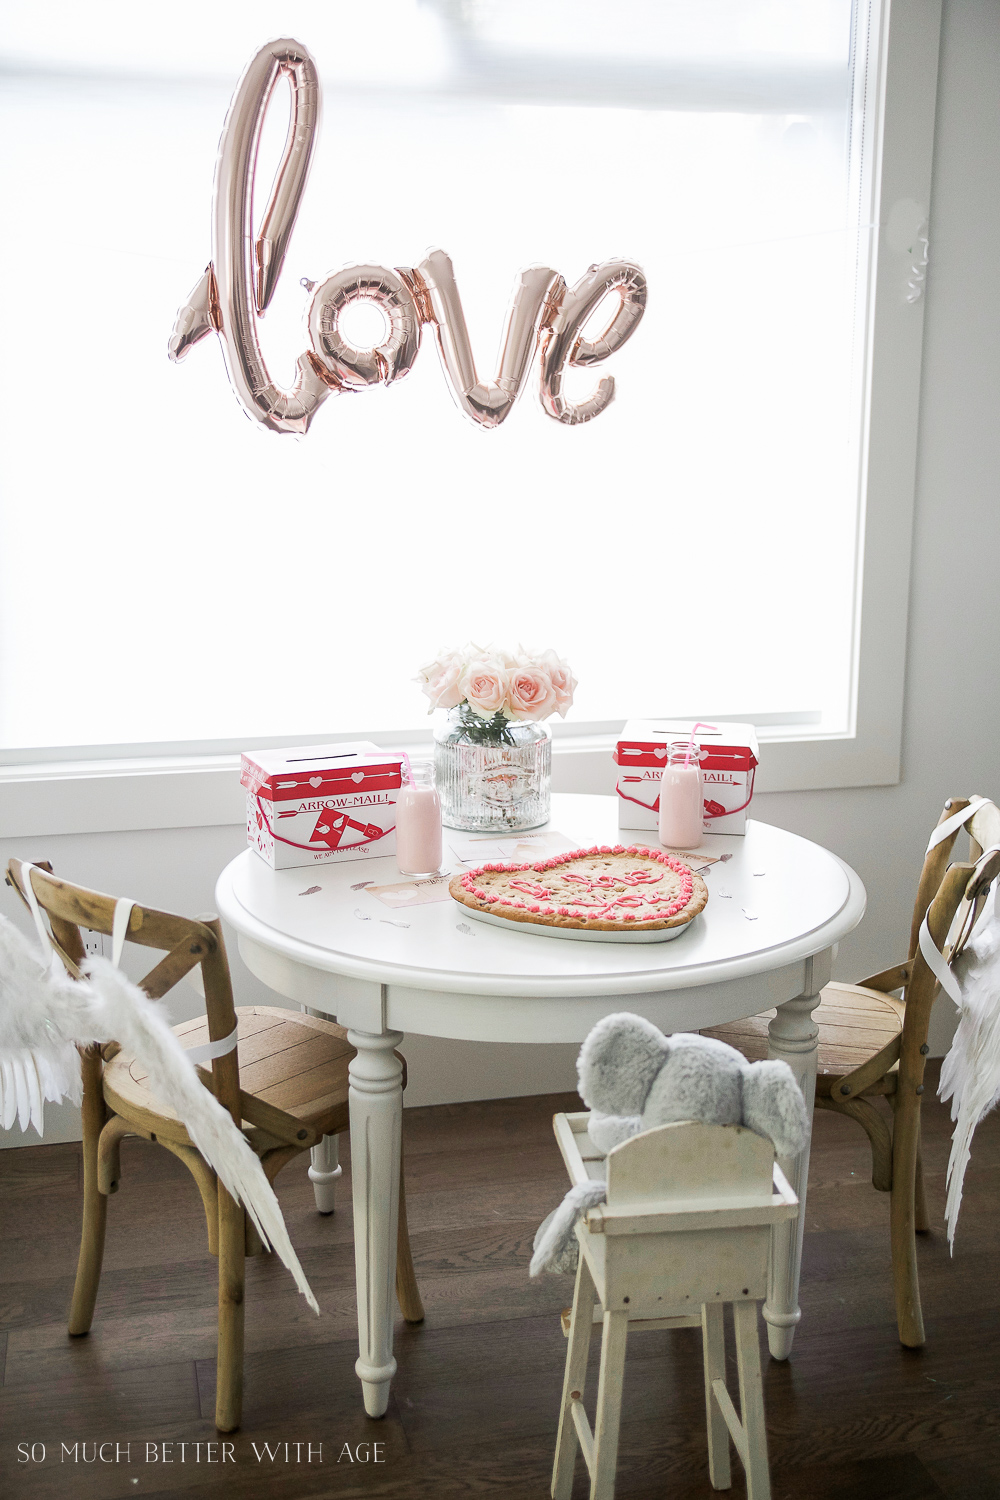 Valentine's Day Kids' Table, LOVE Balloon and Angel Wings